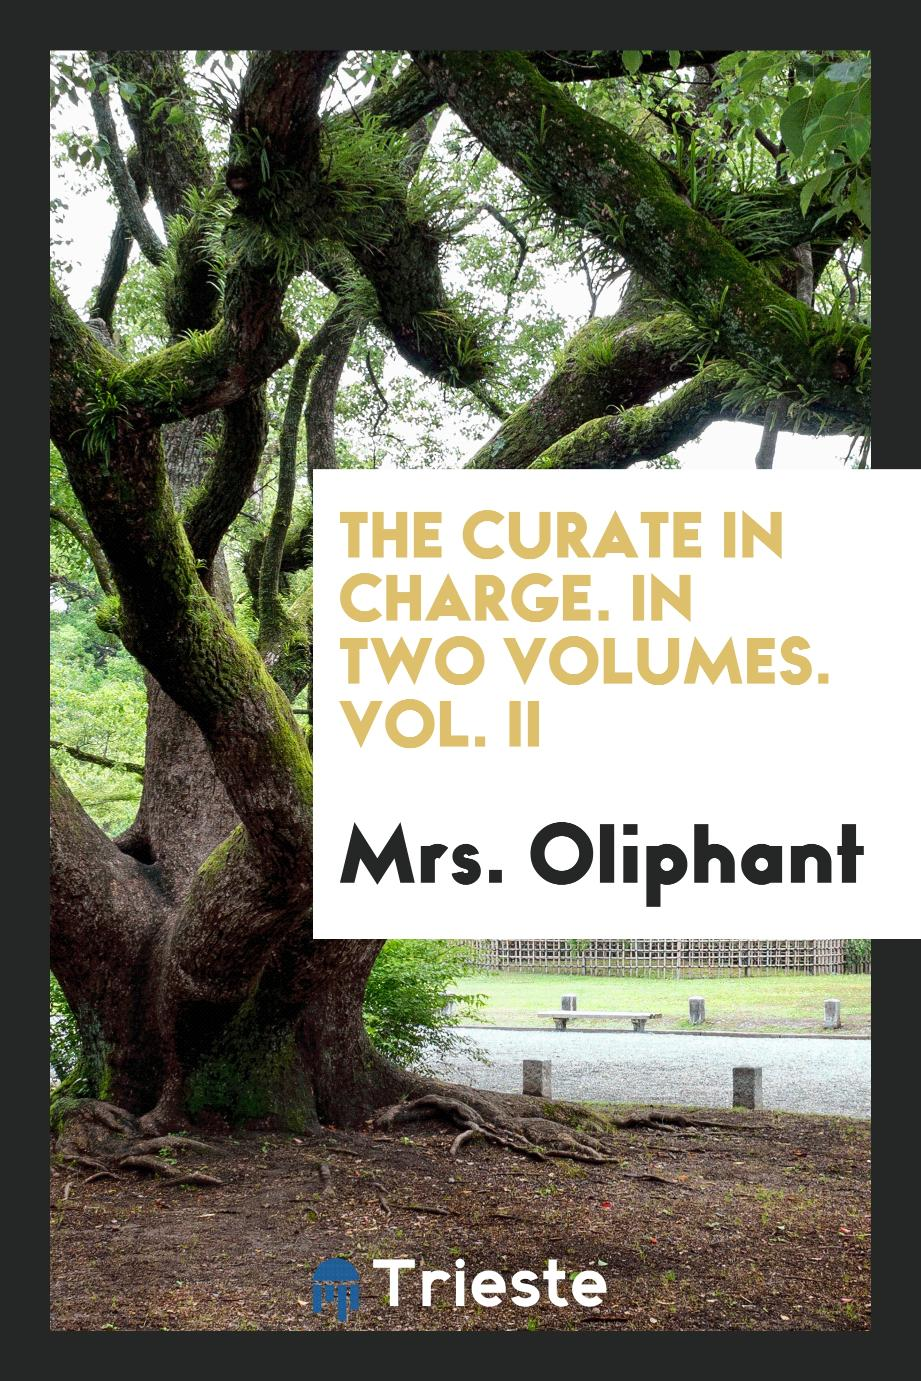 The Curate in Charge. In Two Volumes. Vol. II